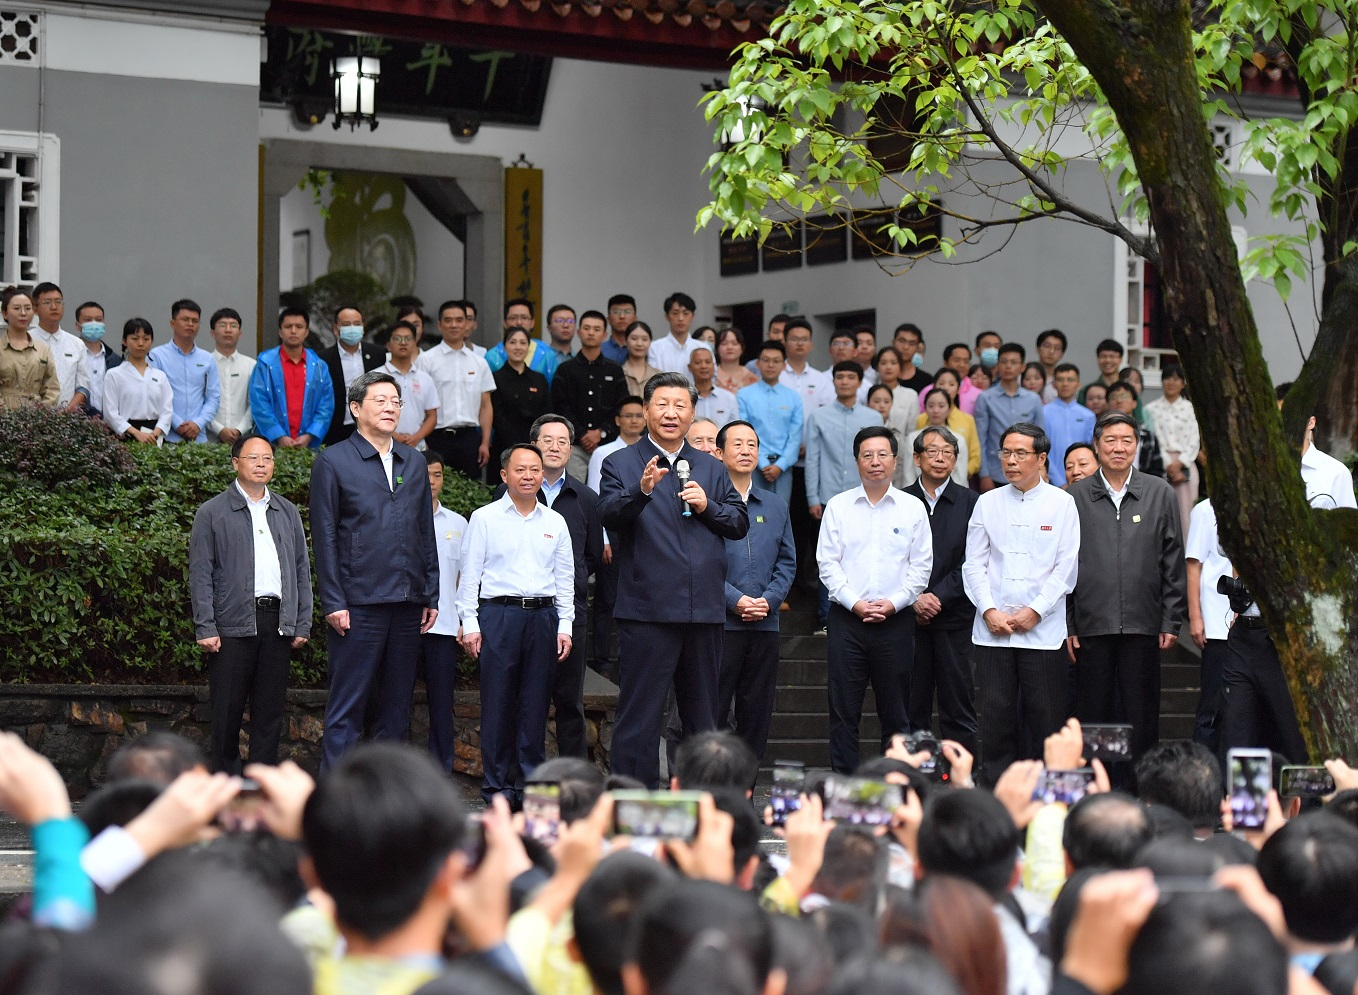 Xi encourages young people to live up to the times